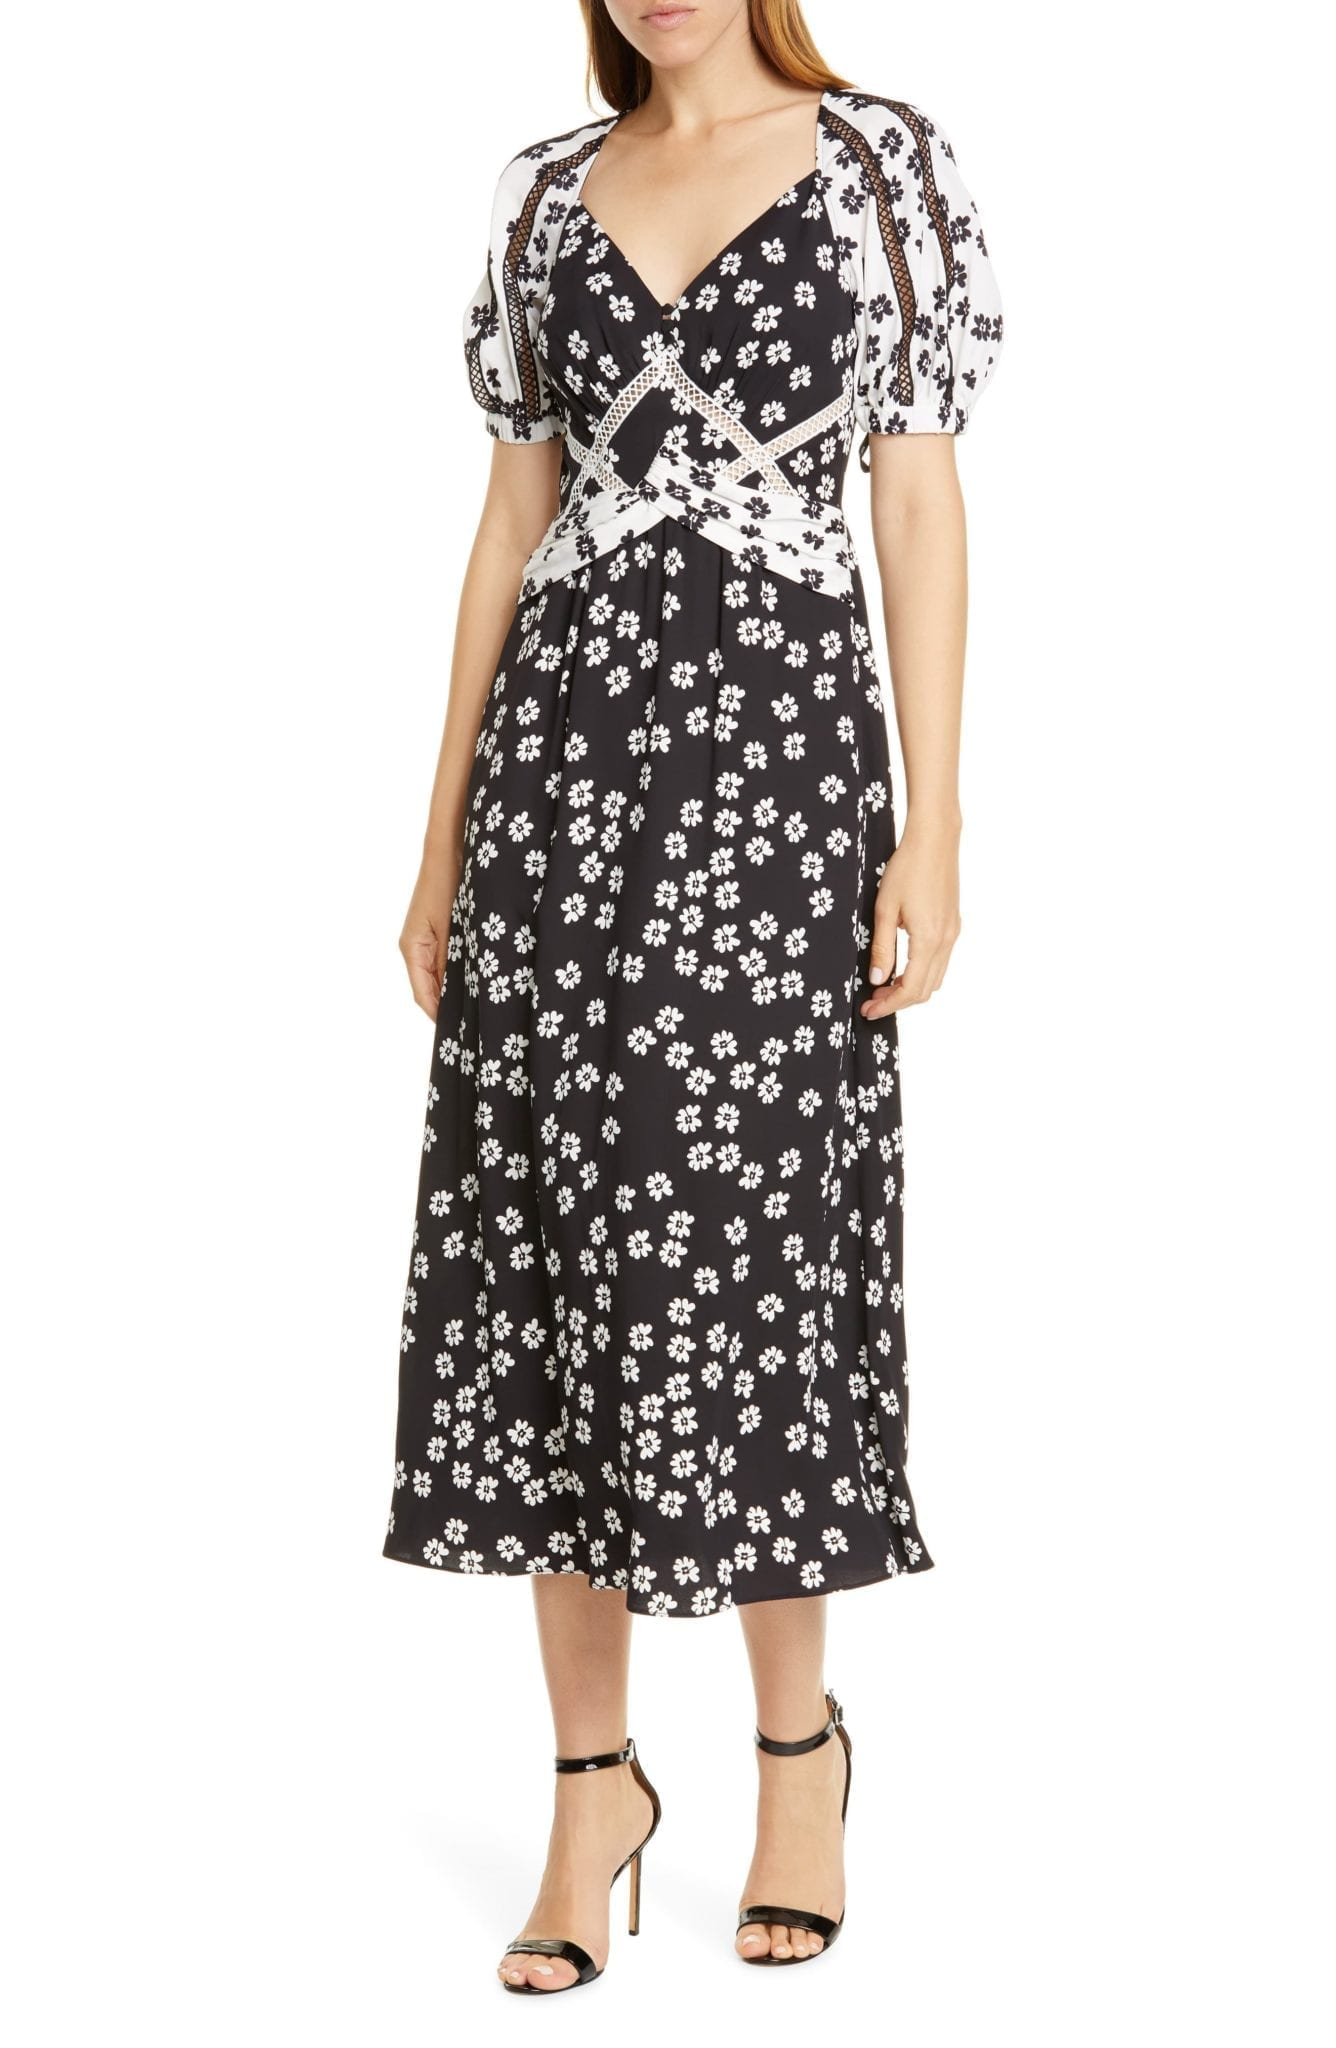 SELF-PORTRAIT Daisy Print Puff Sleeve Midi Dress